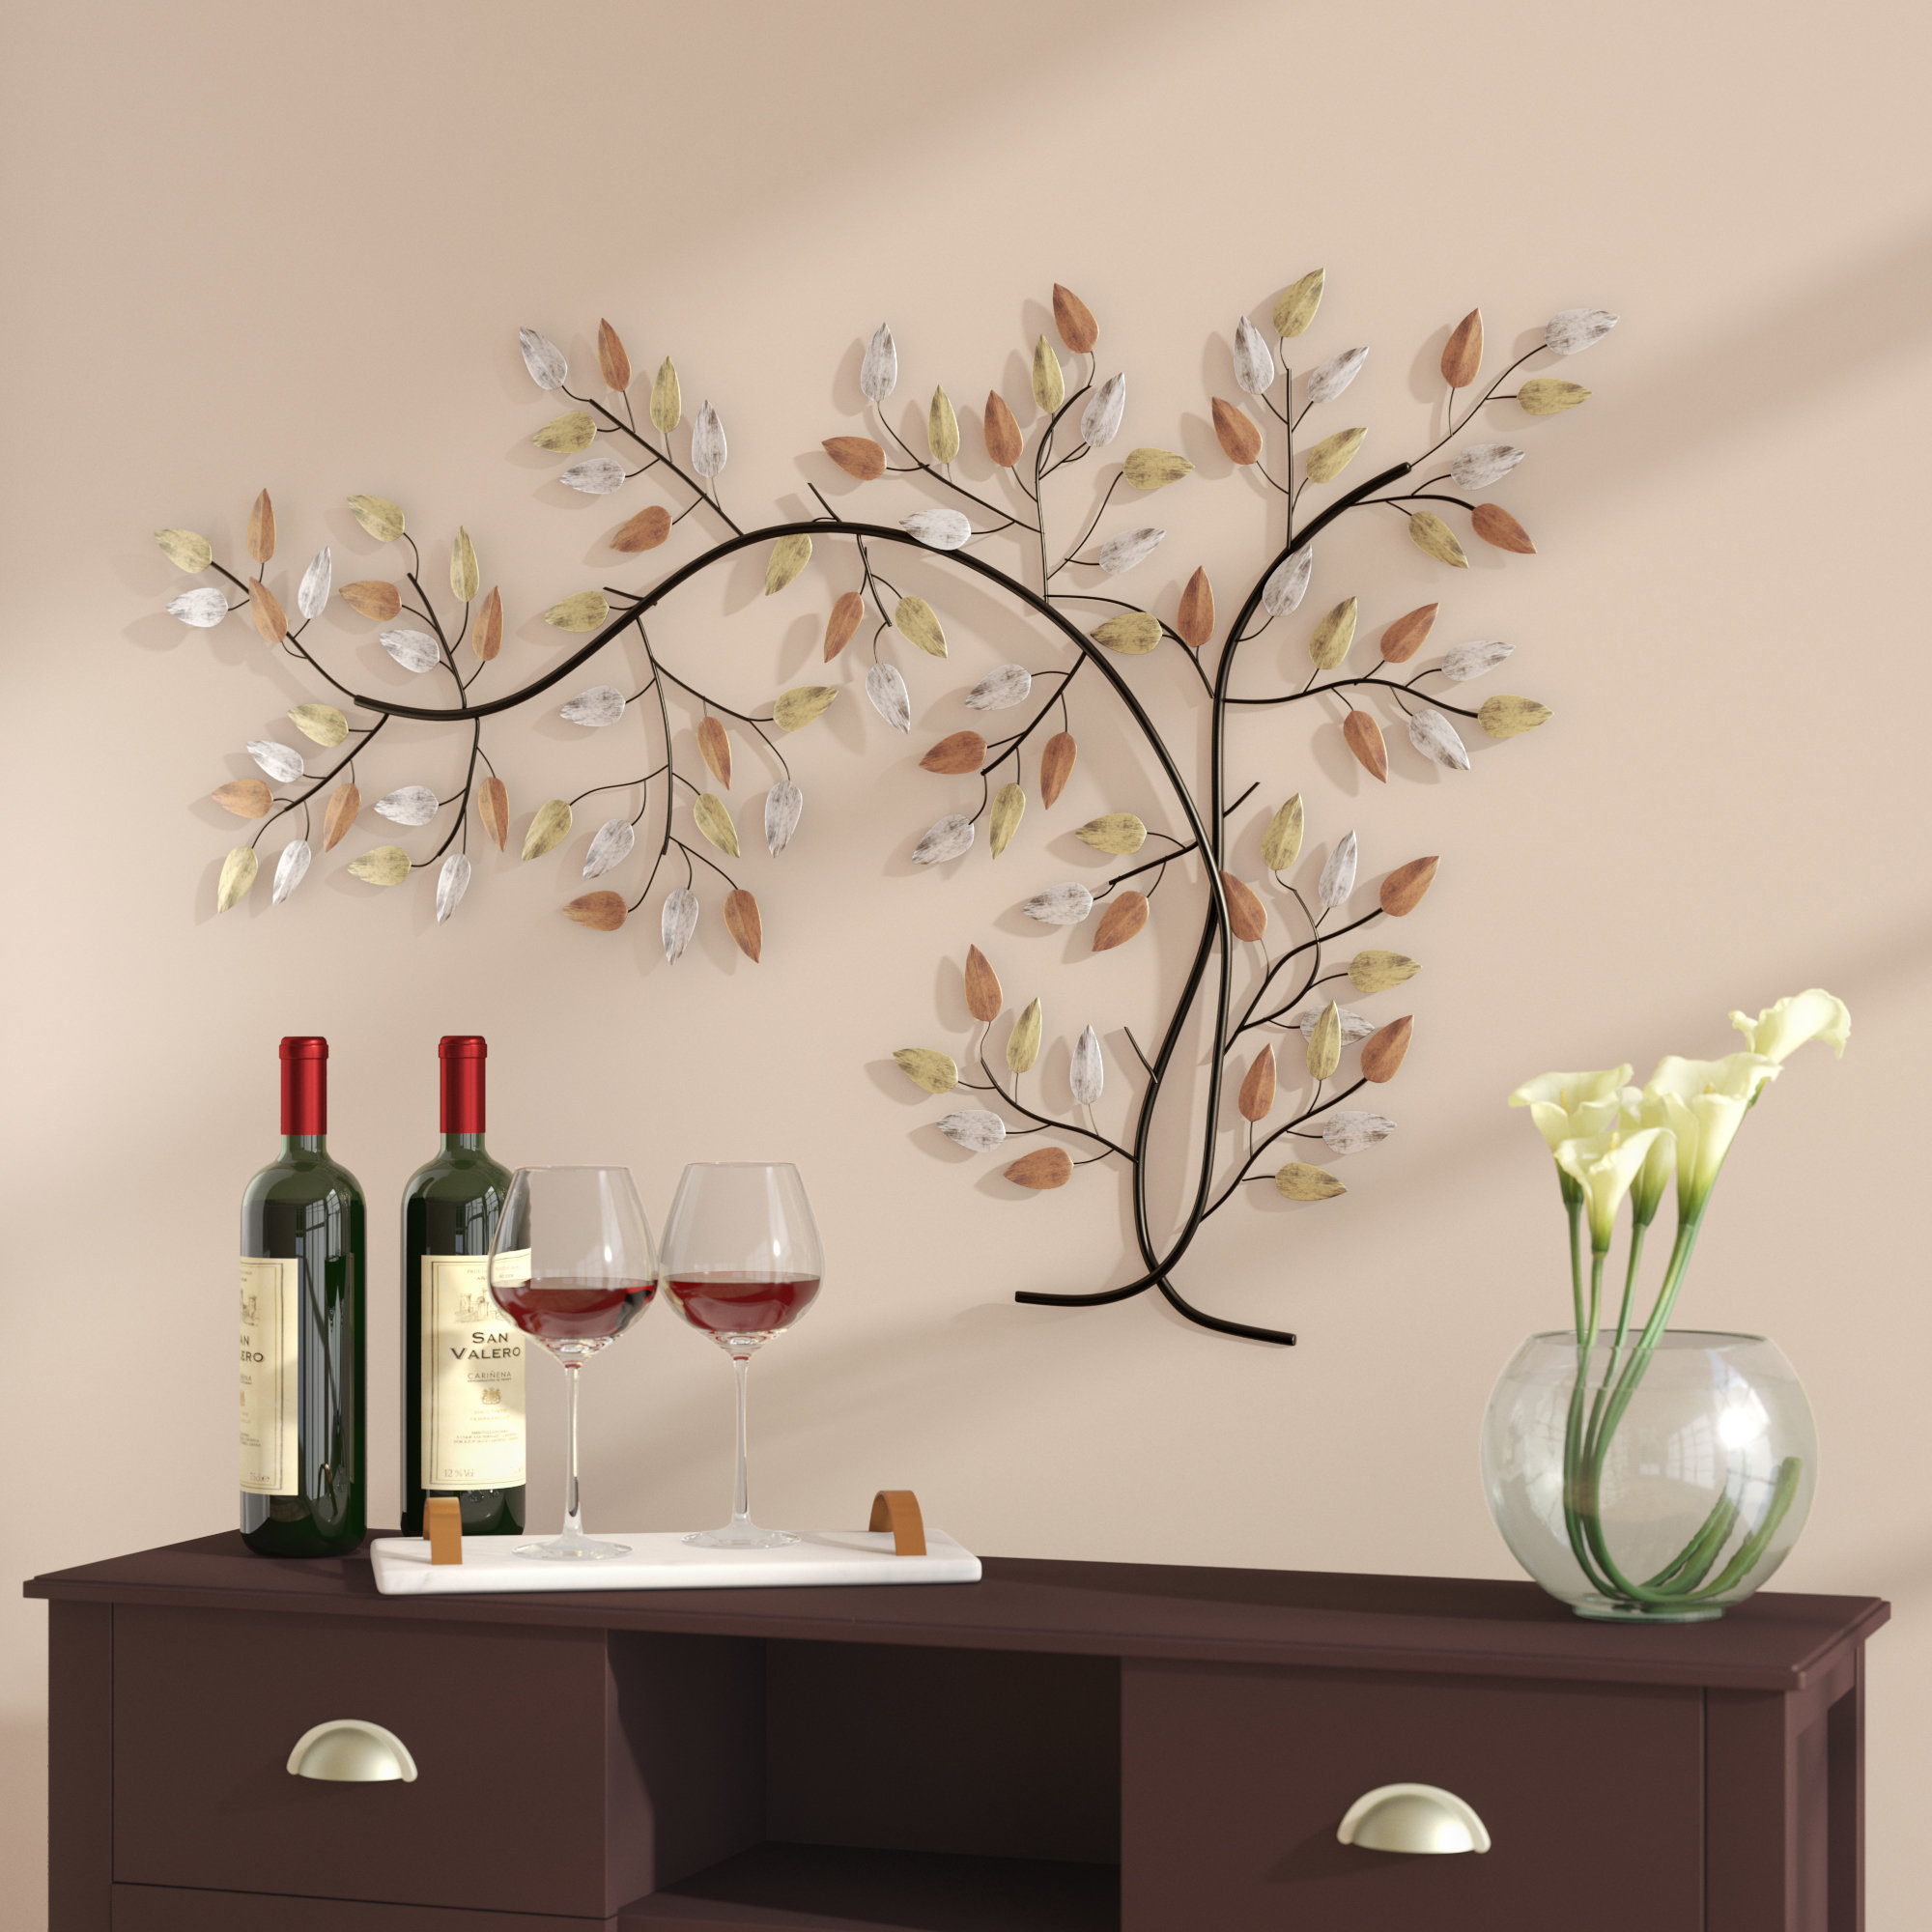 Tree Branch Wall Mirror | Wayfair Regarding Cromartie Tree Branch Wall Mirrors (Image 13 of 20)